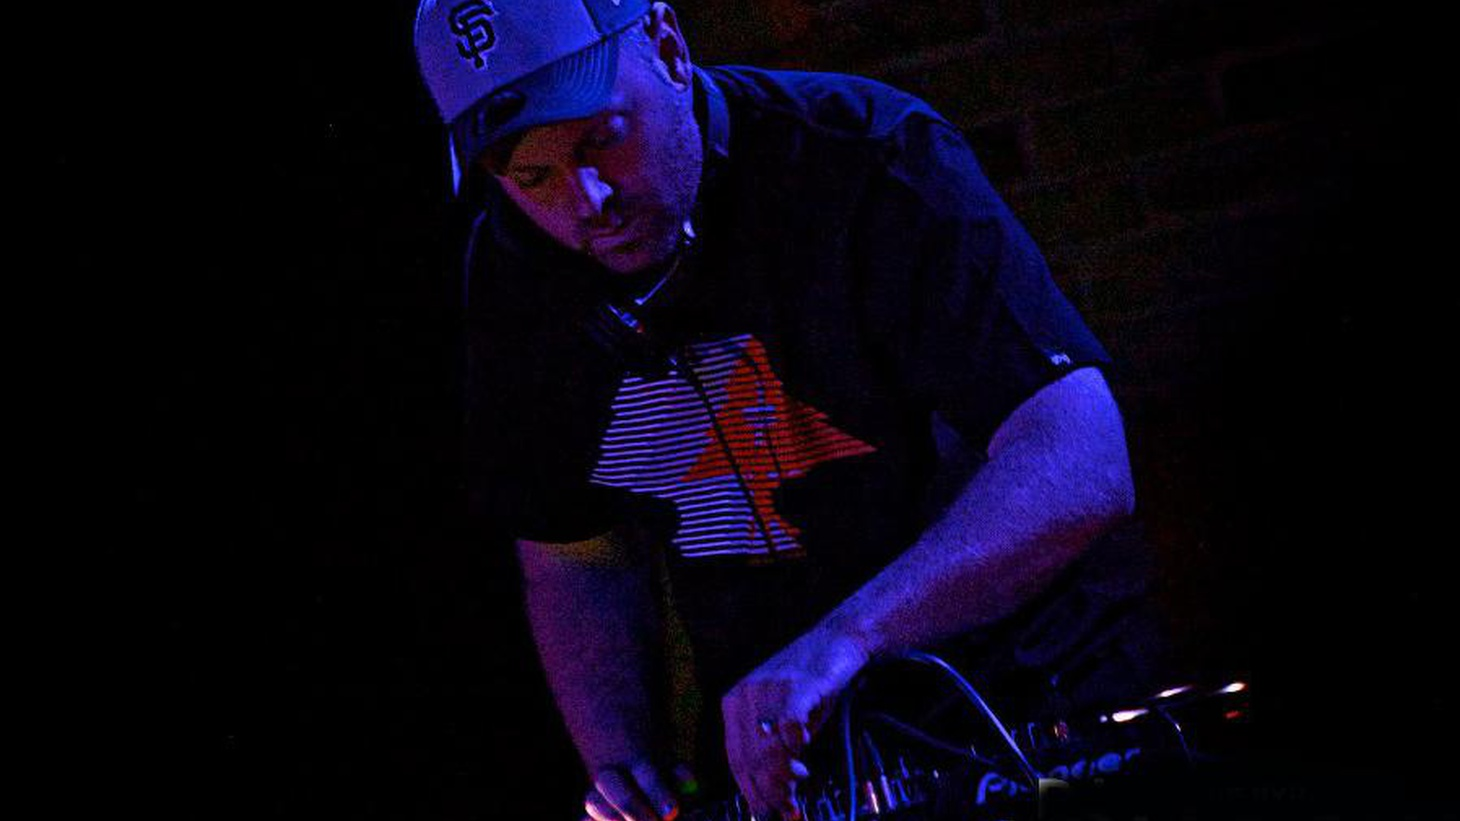 Sound architect DJ Shadow is a pioneer in electronic music...